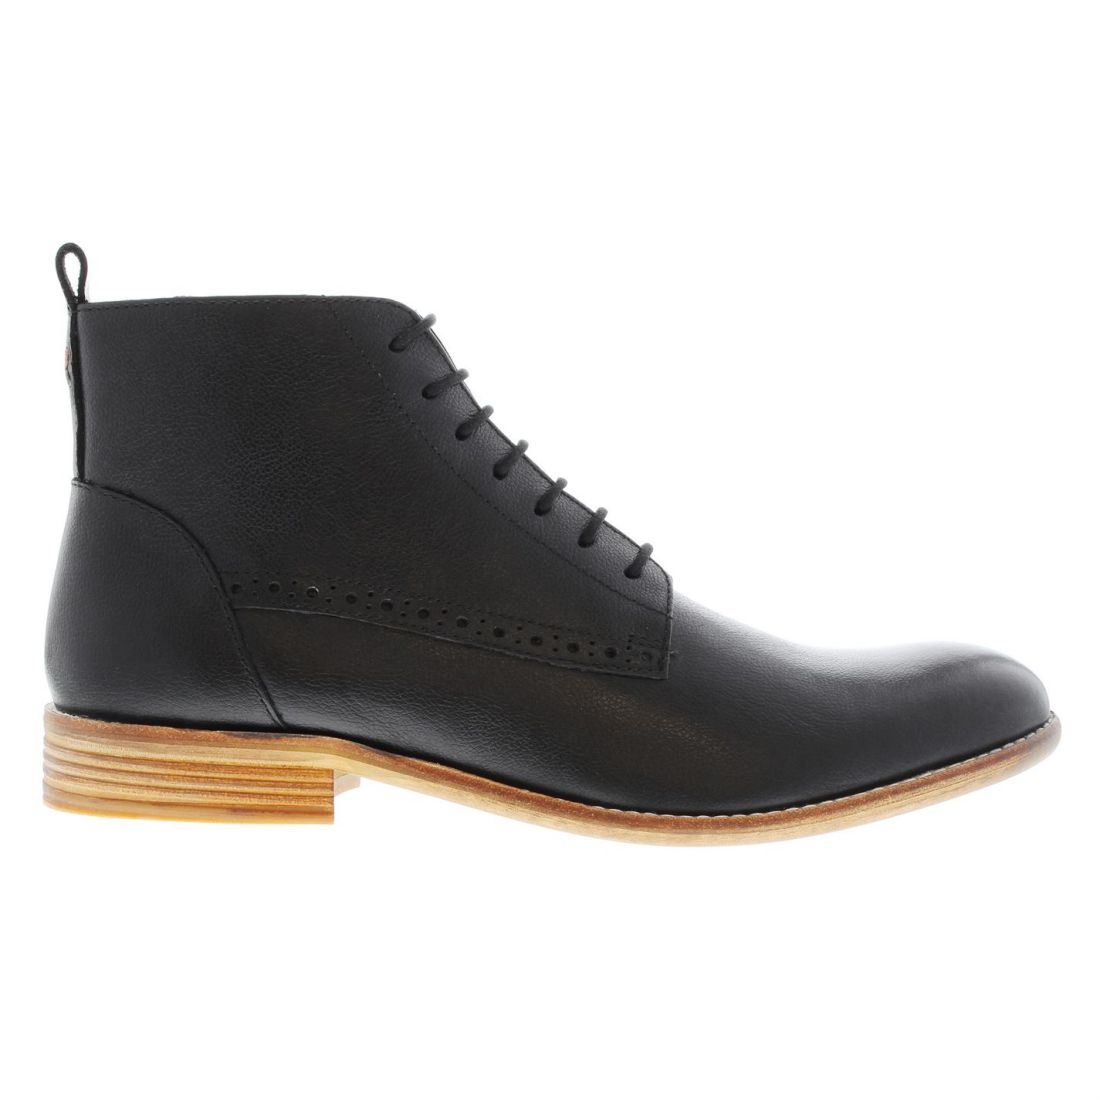 Mens Frank Wright Eden Boots Smart Lace Up New